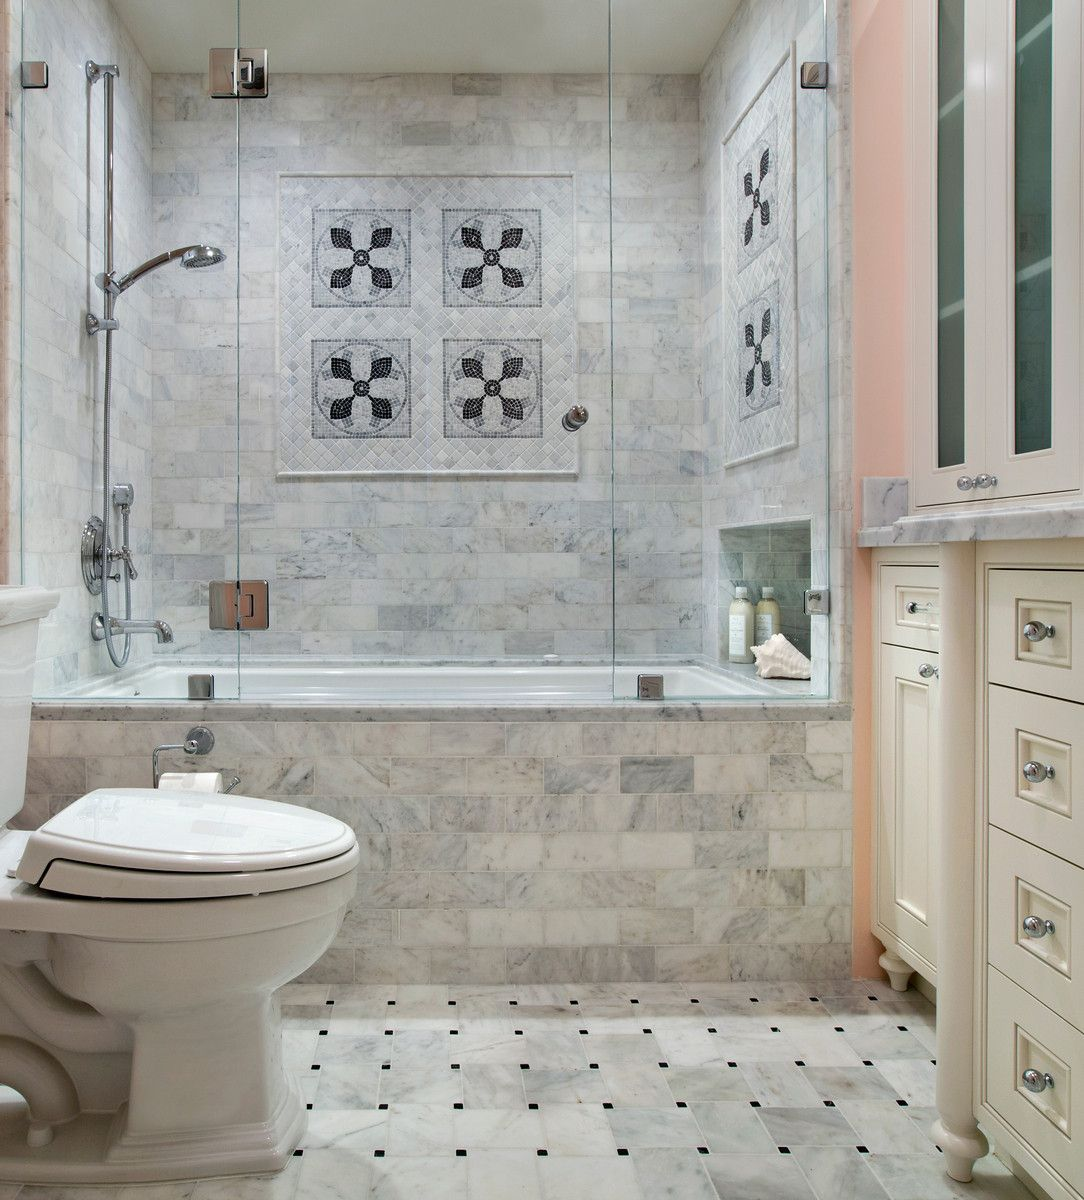 Tub view features Letoon marble tile. TRG Architects.